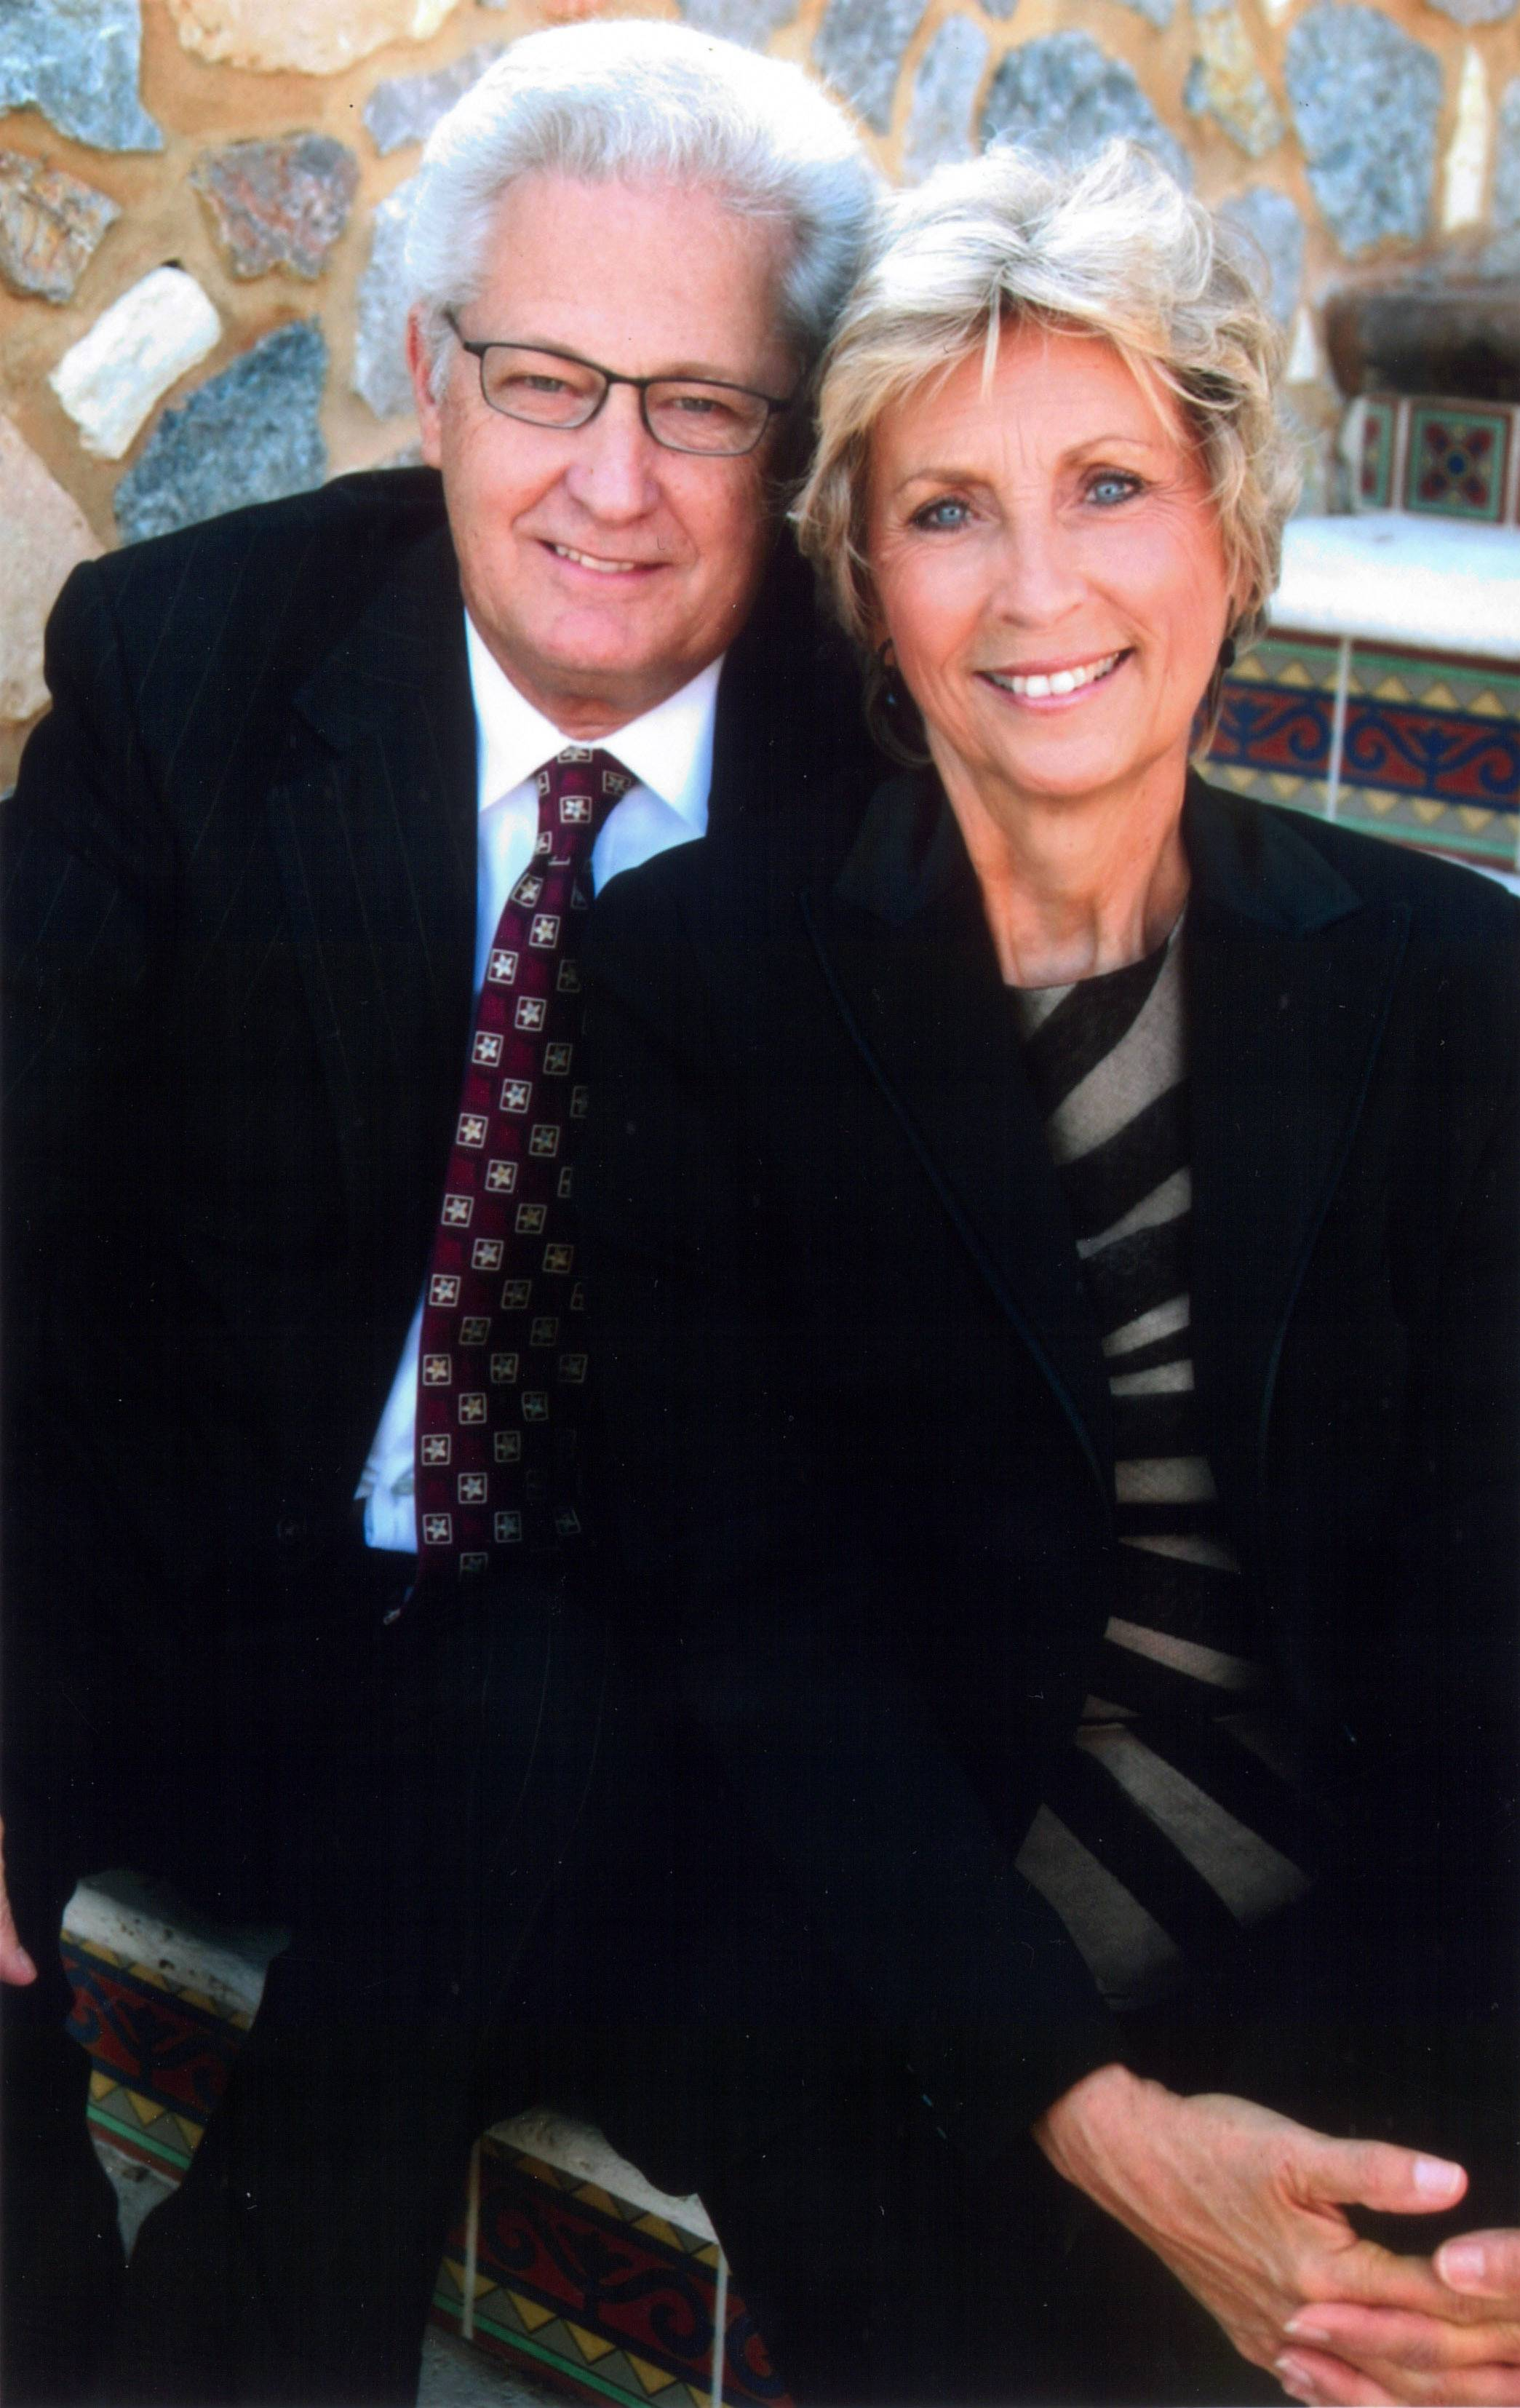 David and Barbara Green are co-founders of the Oklahoma-based Hobby Lobby chain of arts-and-craft stores. The U.S. Supreme court ruled 5-4 earlier this week that requiring closely-held companies such as Hobby Lobby to pay for methods of women's contraception to which they object violates the corporations' religious freedom.